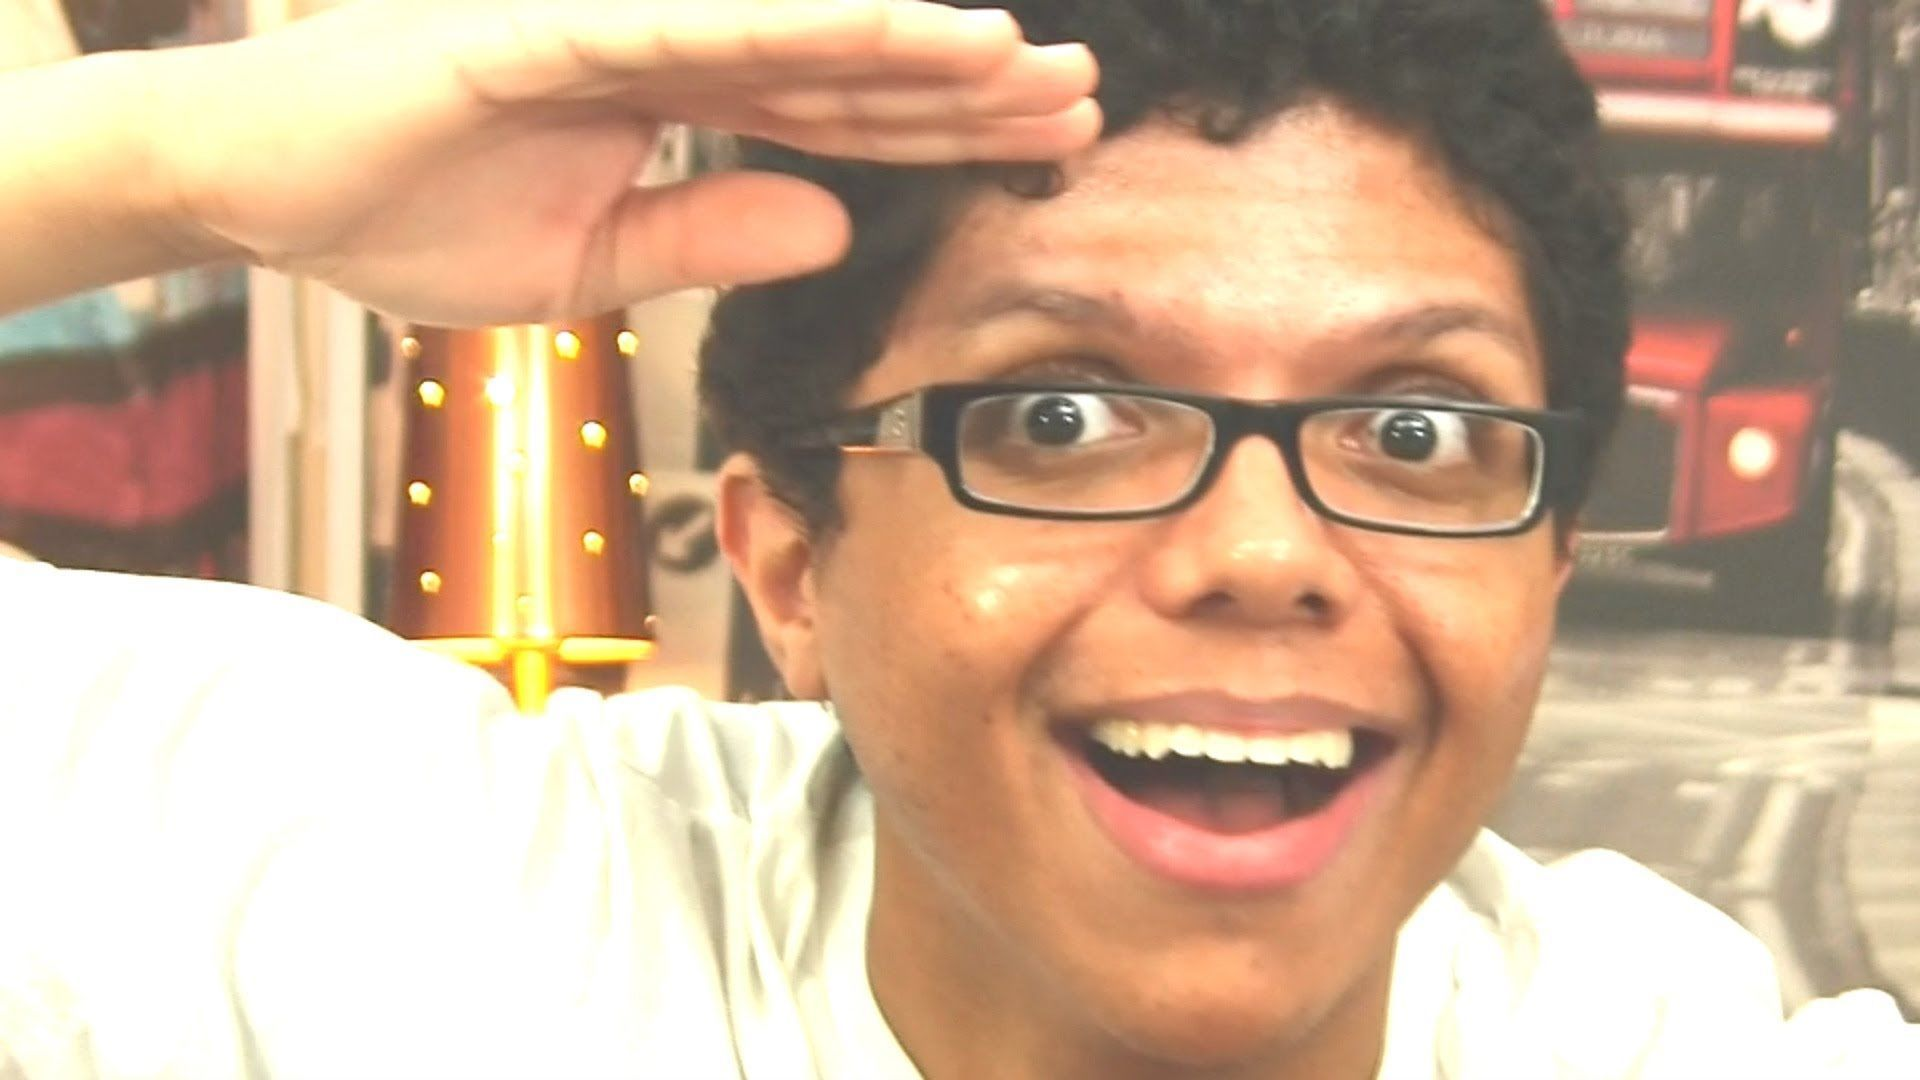 Tay zonday is gay